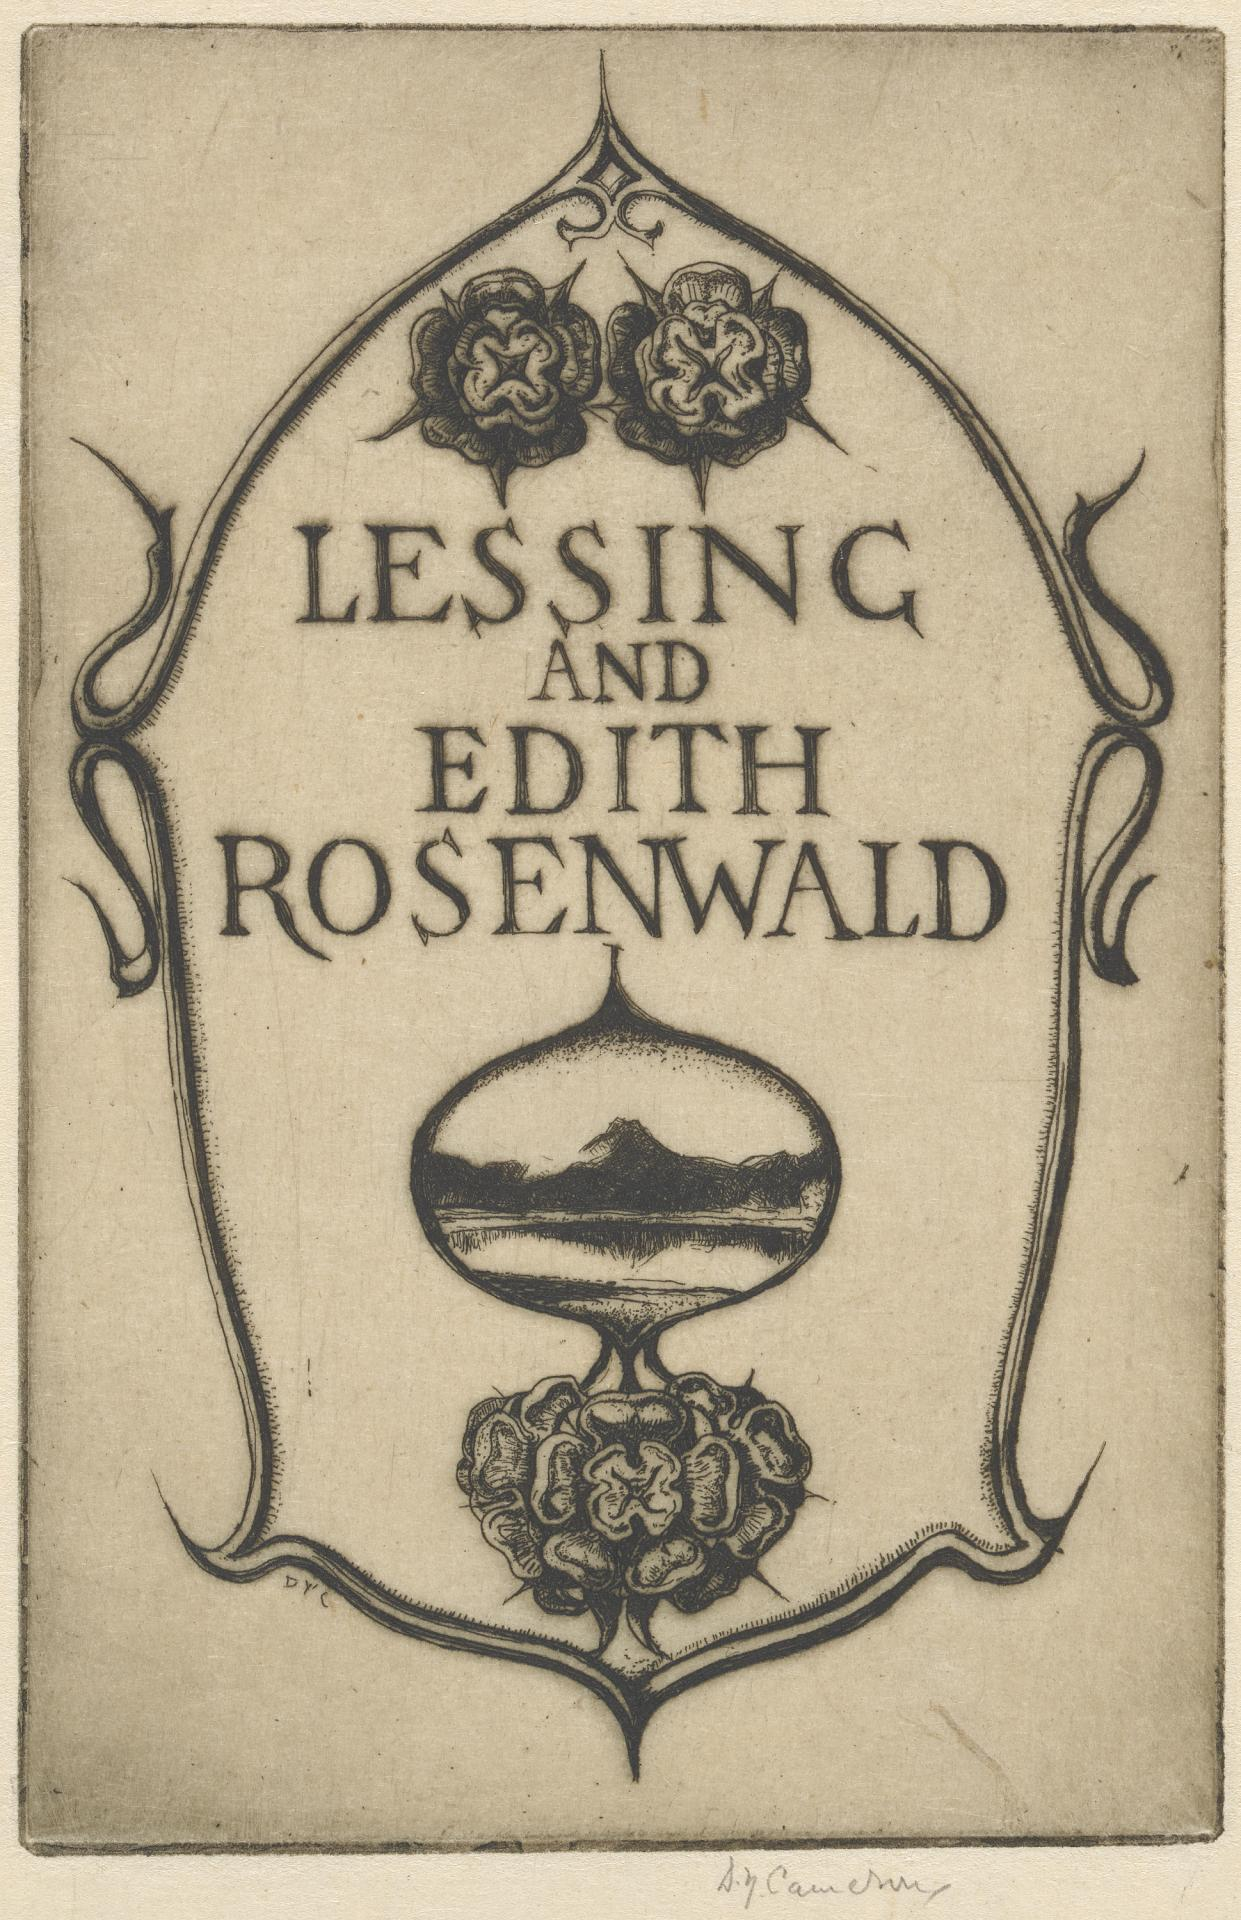 Lessing and Edith Rosenwald, bookplate